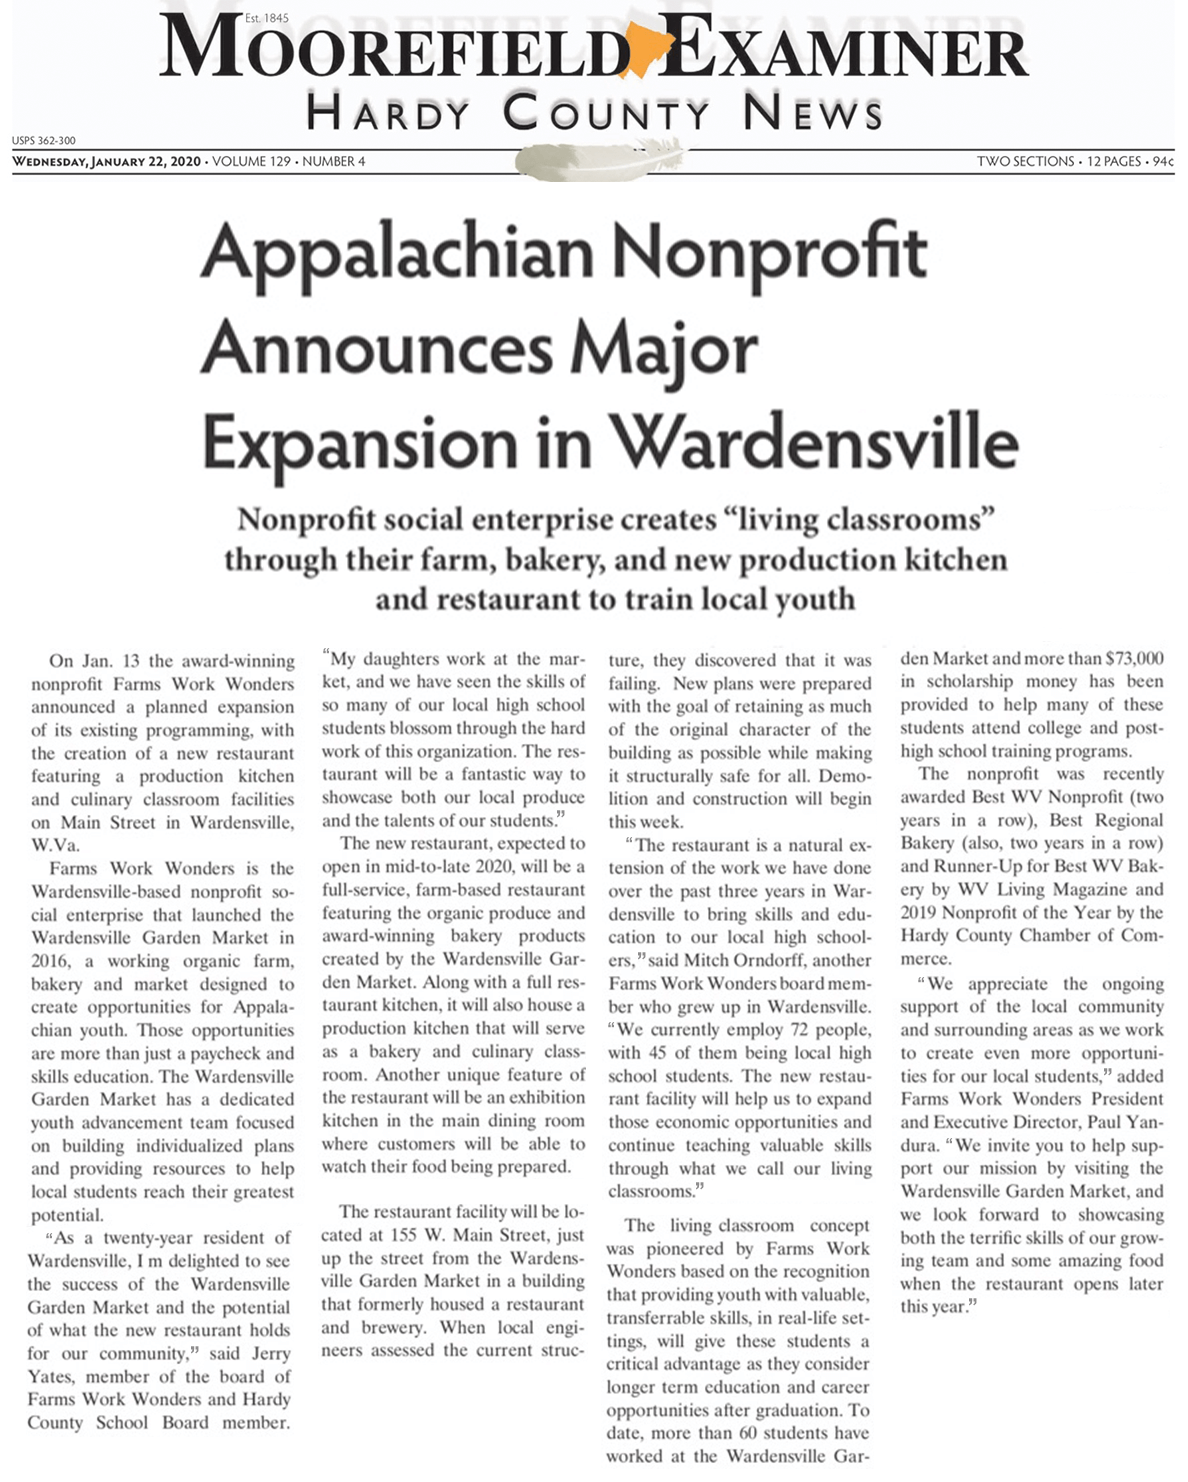 Appalachian Nonprofit Announces Major Expansion in Wardensville